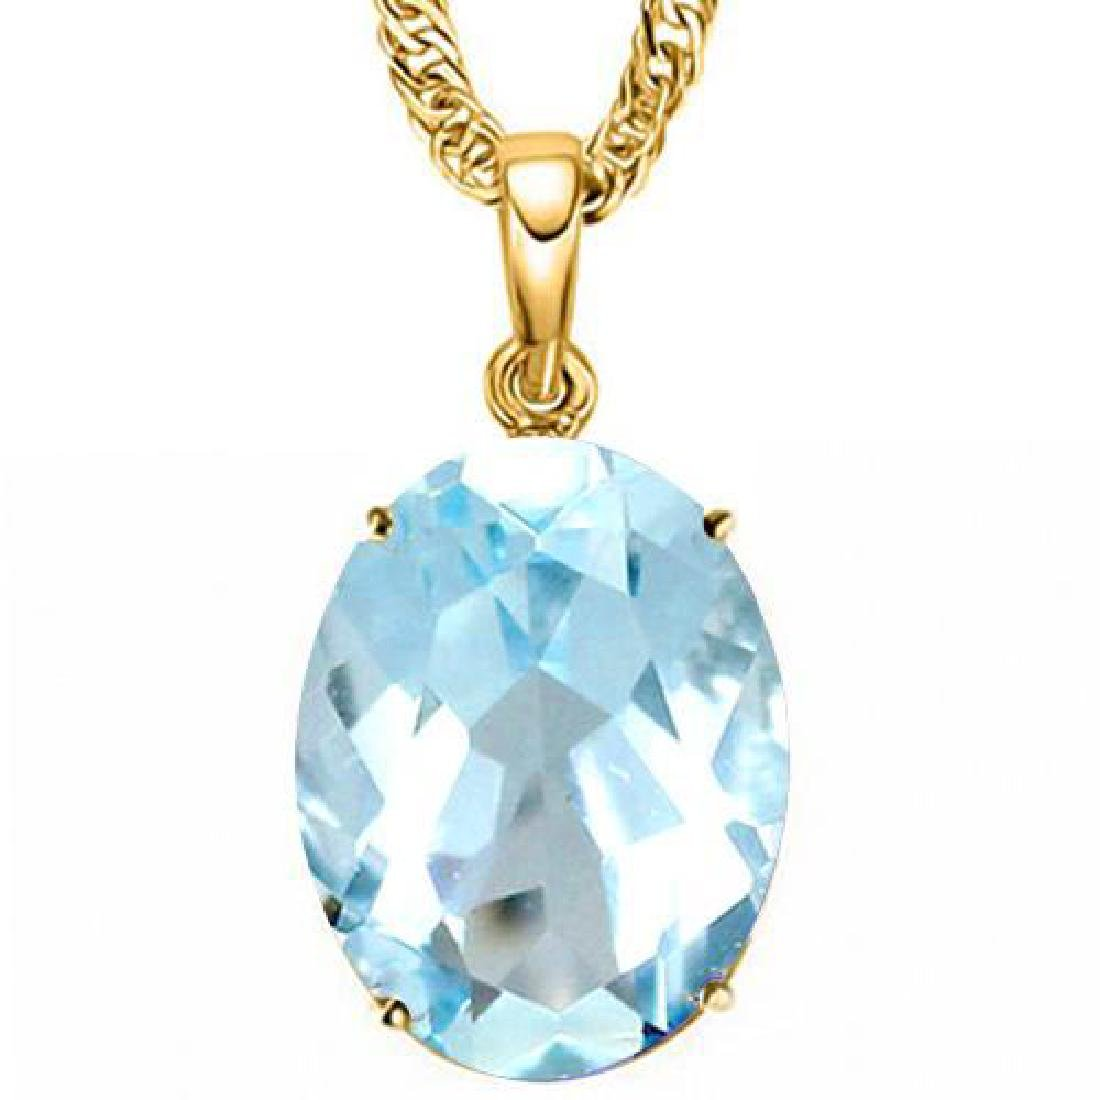 0.9 CTW SKY BLUE TOPAZ 10K SOLID YELLOW GOLD OVAL SHAPE